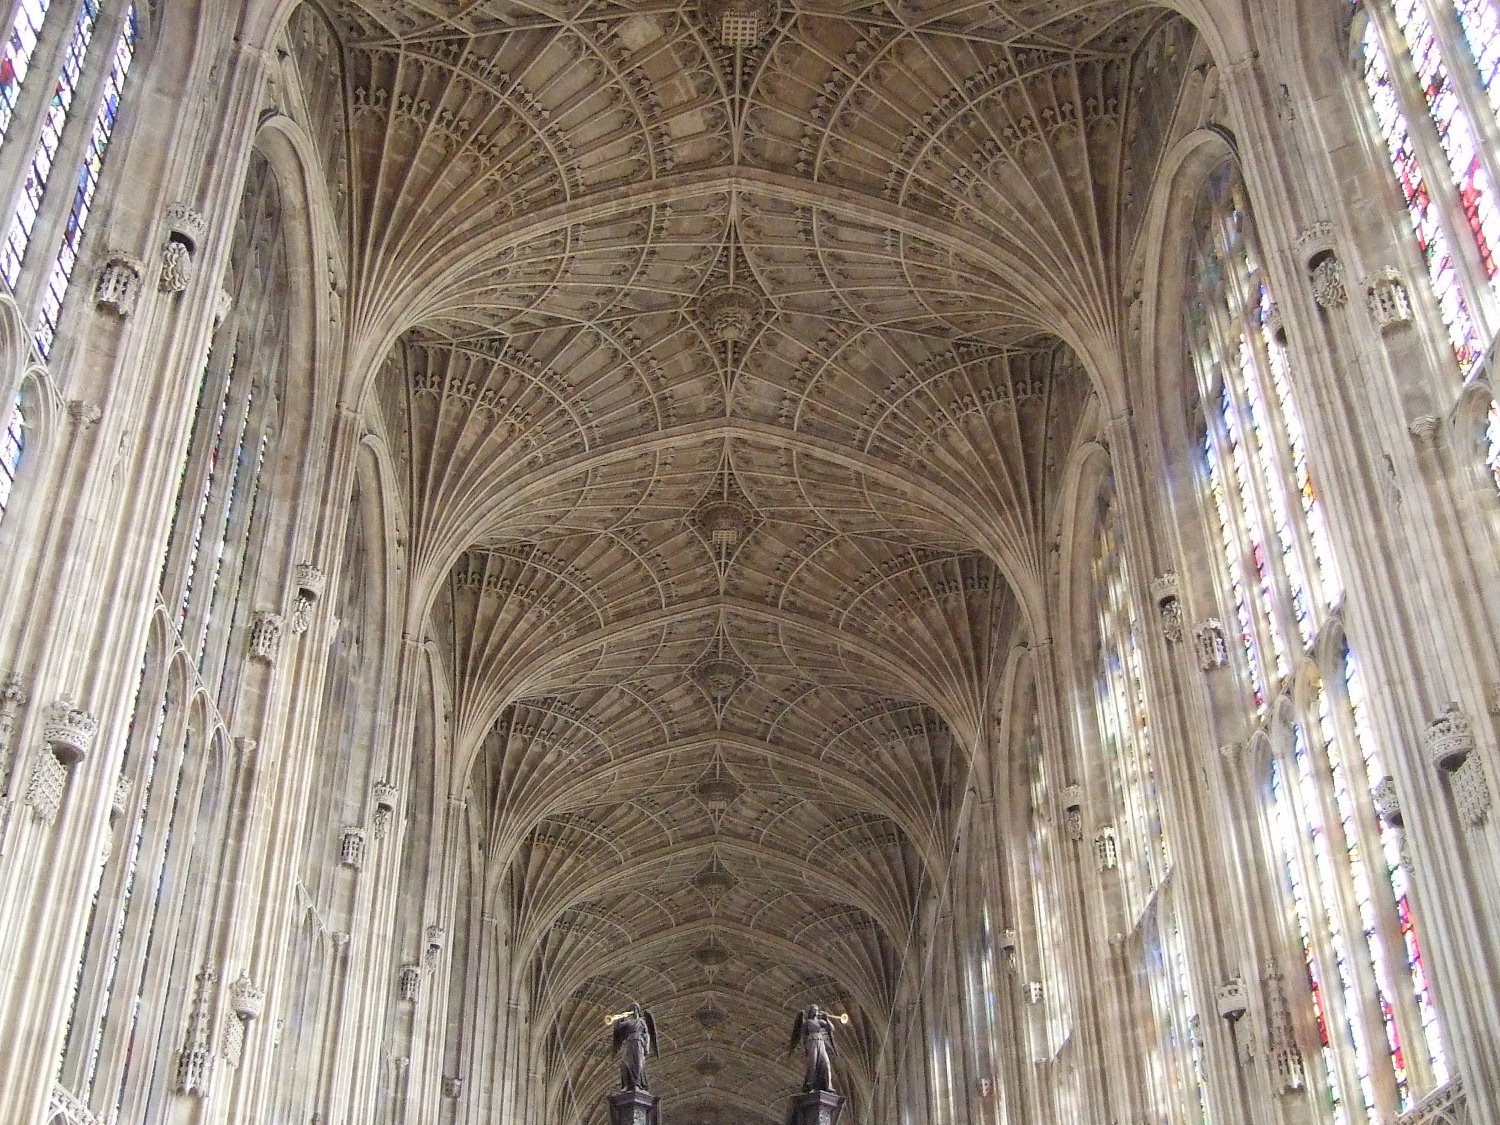 Roof of Kings College Chapel